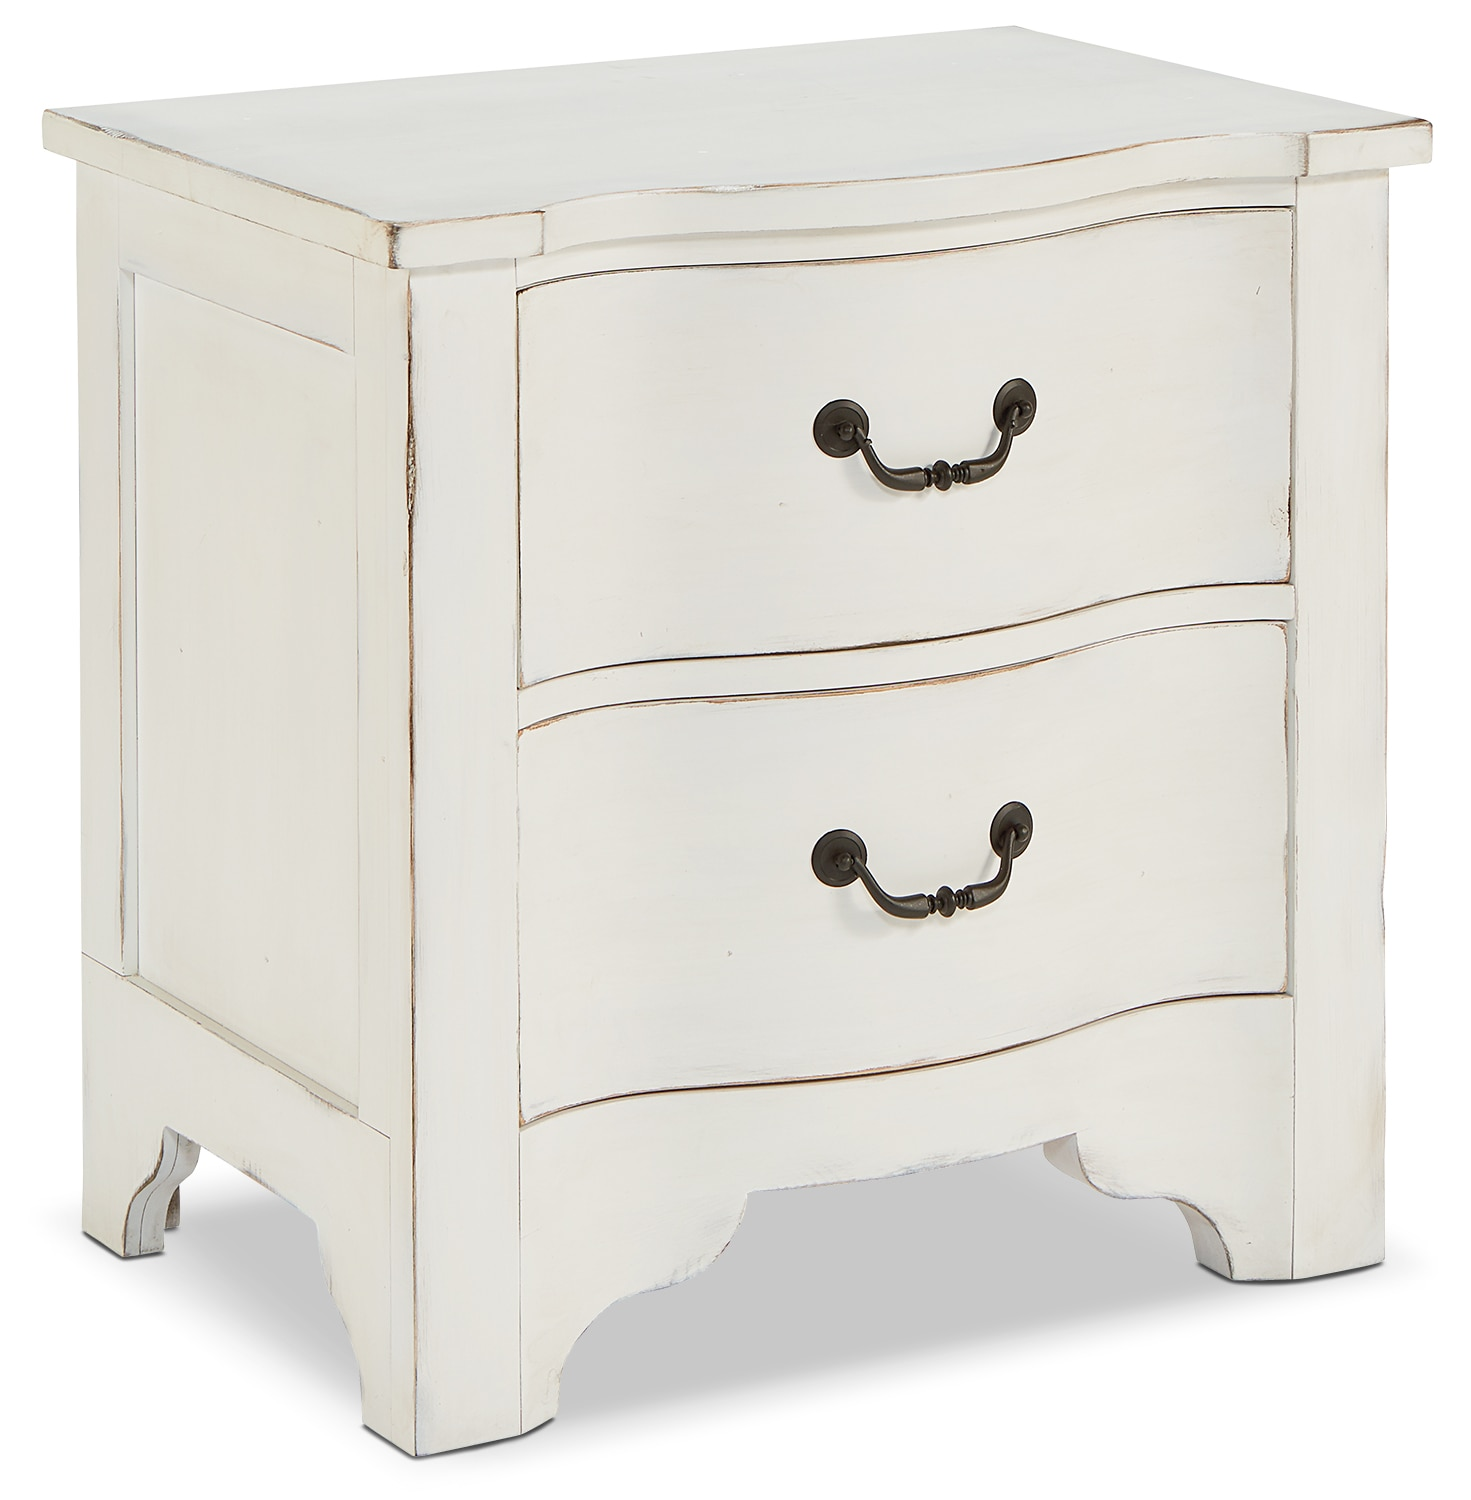 Bedroom Furniture - La Grange Nightstand - White